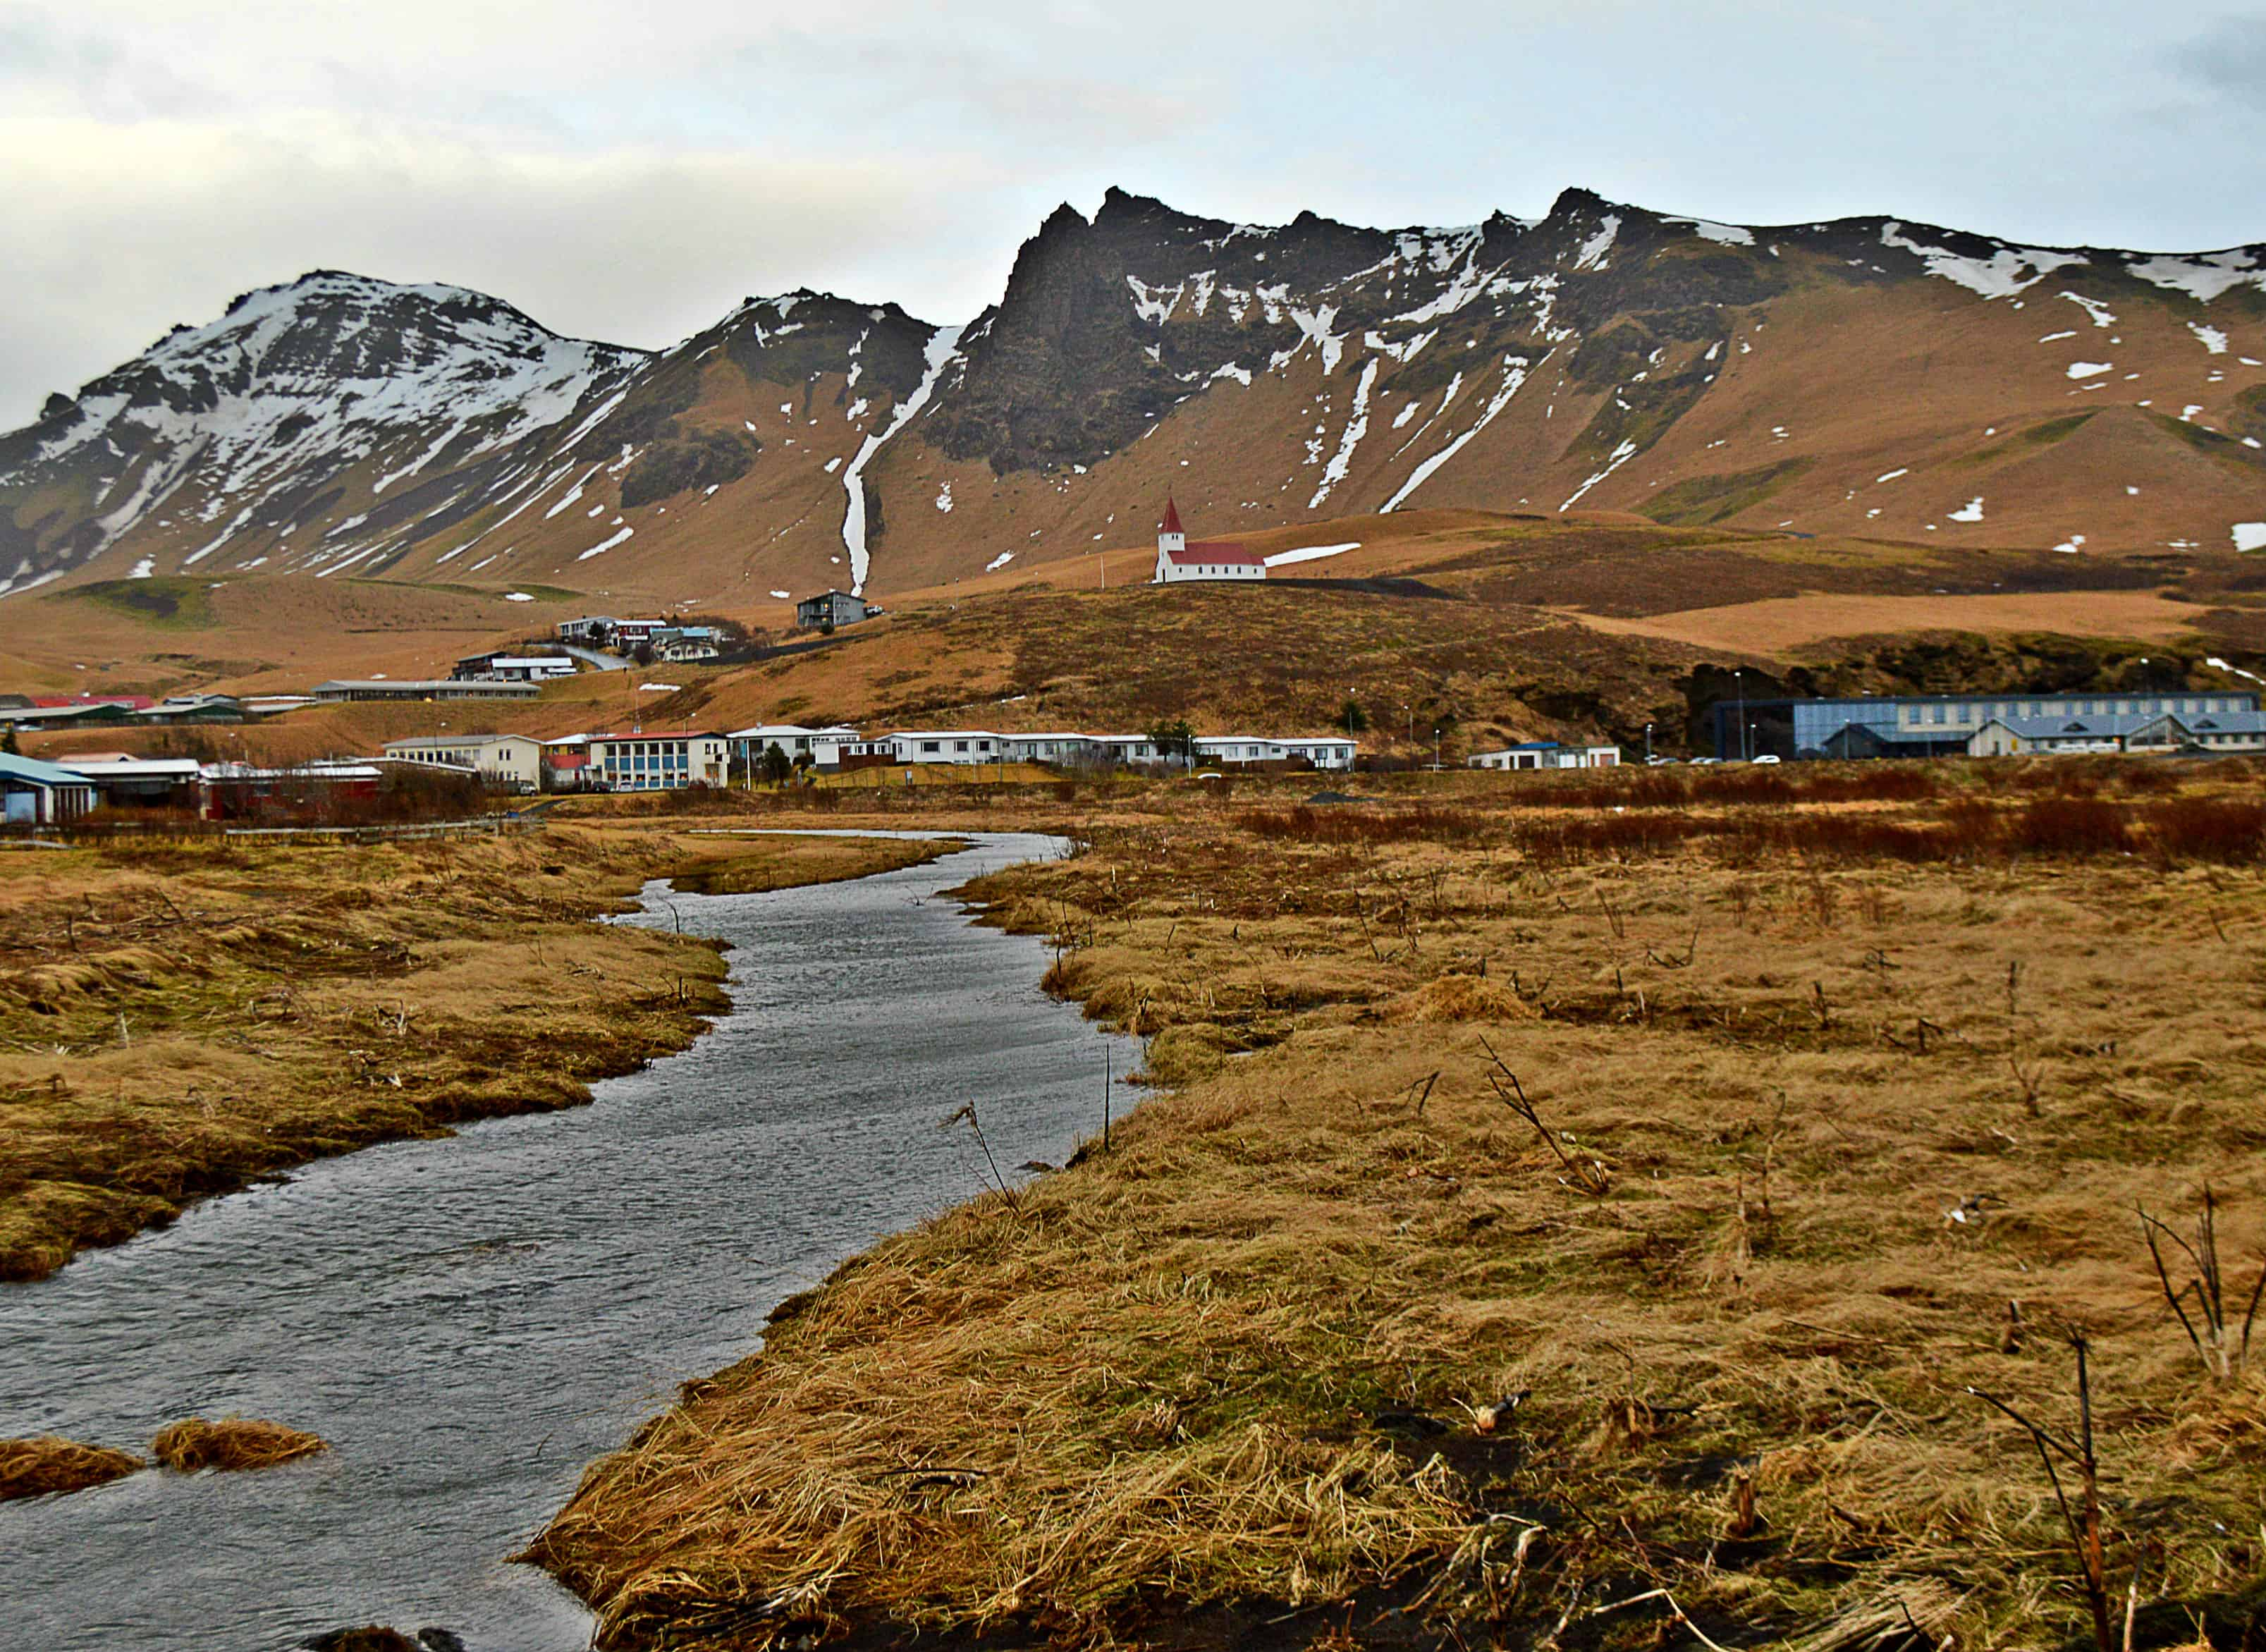 mountains-surrounding-village-of-vik-iceland-eileen-cotter-wright